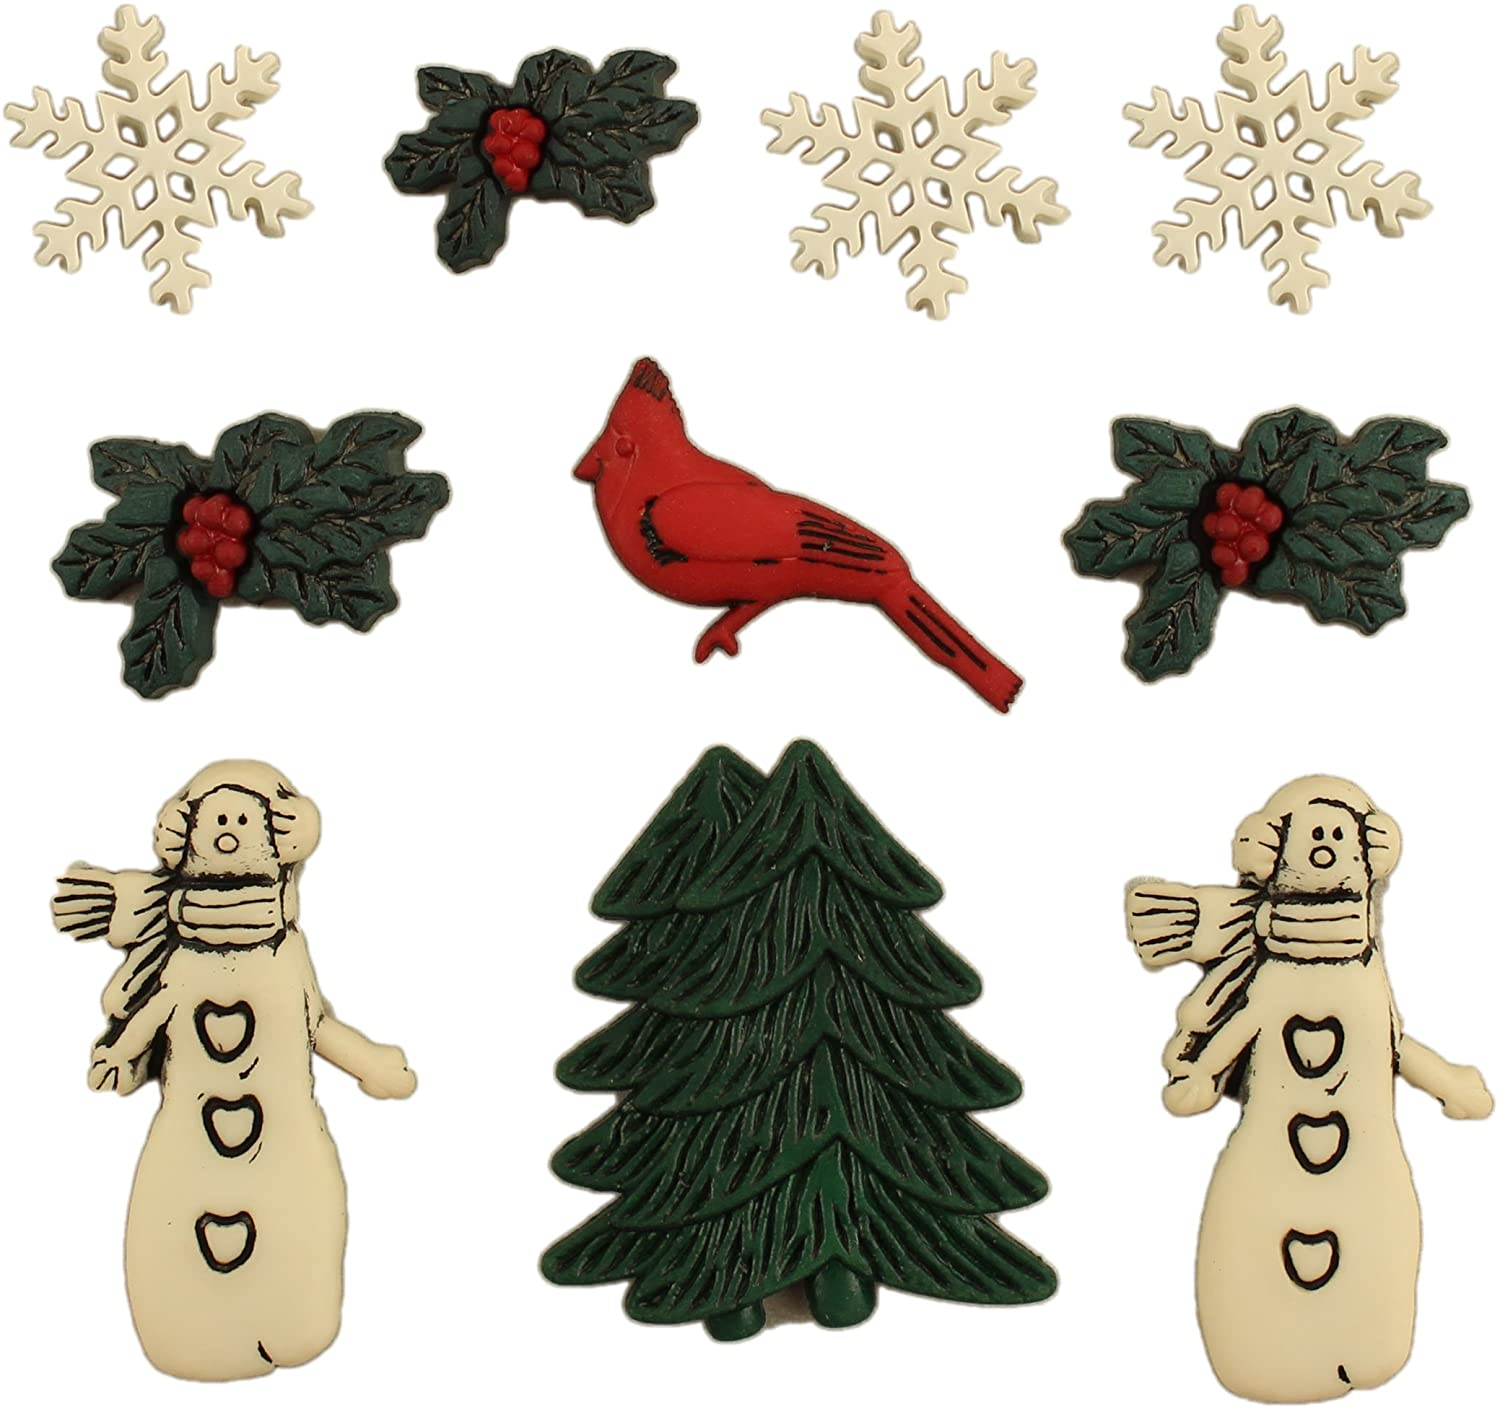 Buttons Galore Country Christmas Novelty Craft Buttons, 1x7.5x10 cm, Multicolor